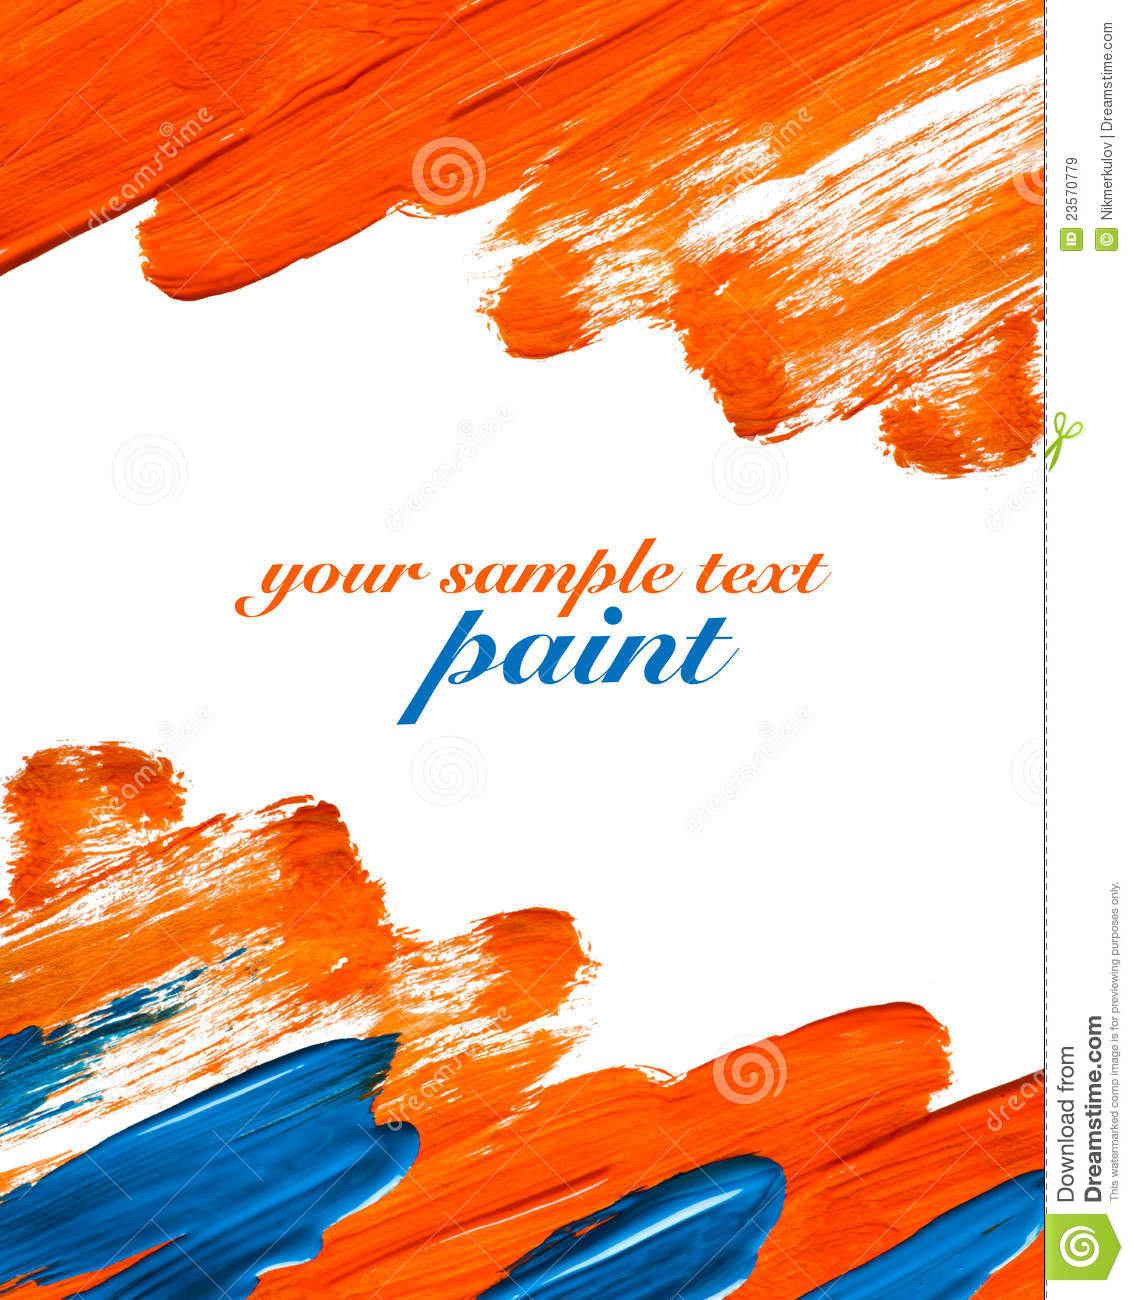 orange and blue paint strokes royalty free stock images image 23570779. Black Bedroom Furniture Sets. Home Design Ideas